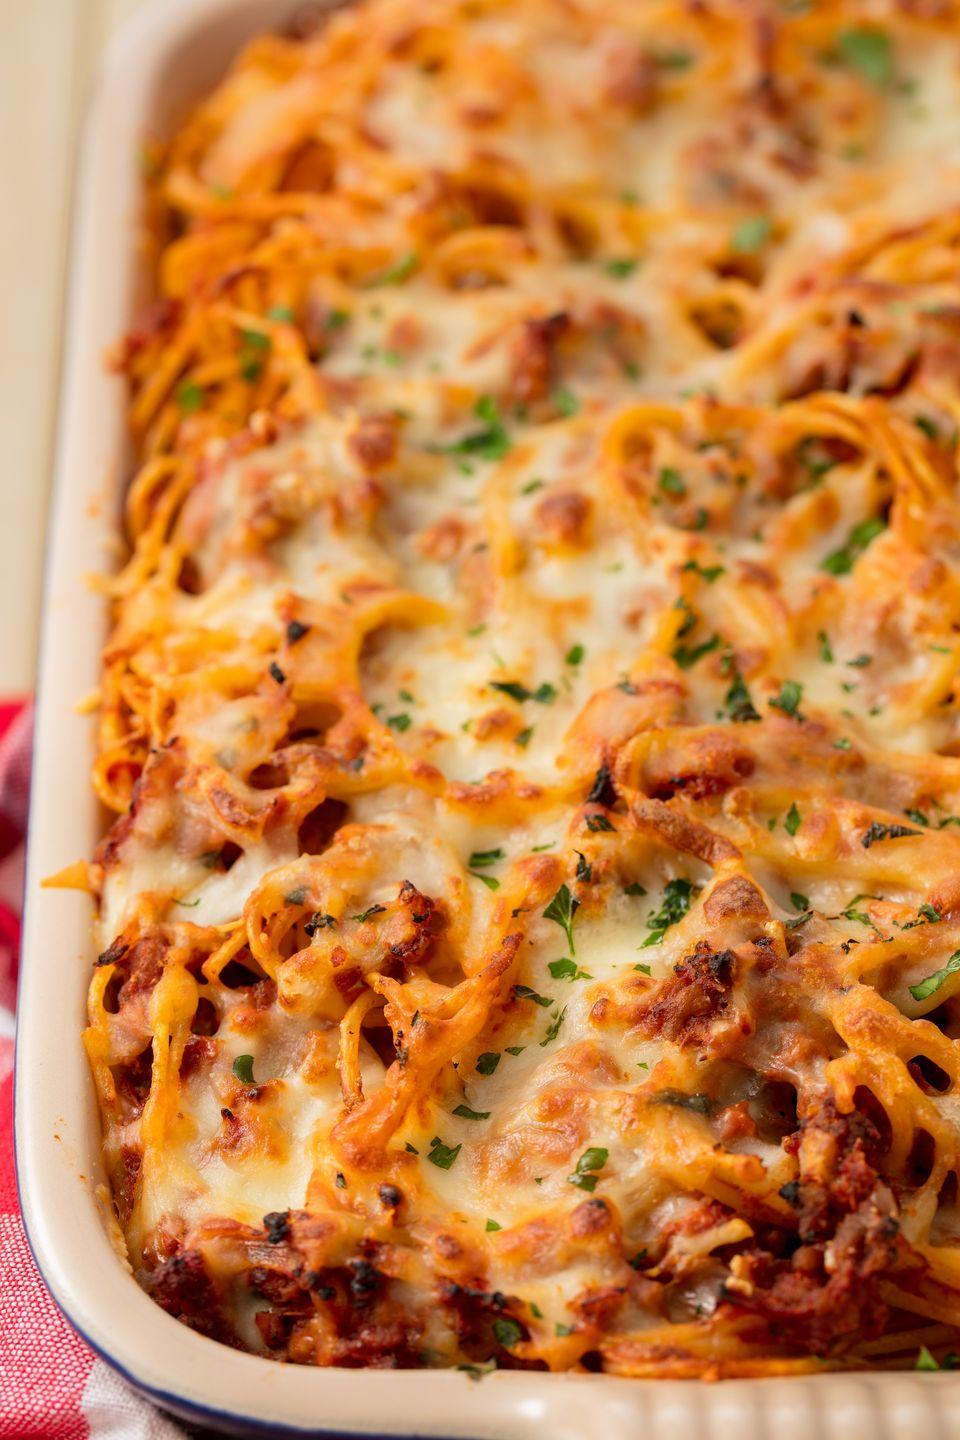 "<p>Nothing beats a heaping helping of spaghetti.</p><p>Get the recipe from <a href=""https://www.delish.com/cooking/recipe-ideas/recipes/a55510/easy-baked-spaghetti-recipe/"" rel=""nofollow noopener"" target=""_blank"" data-ylk=""slk:Delish"" class=""link rapid-noclick-resp"">Delish</a>. </p>"